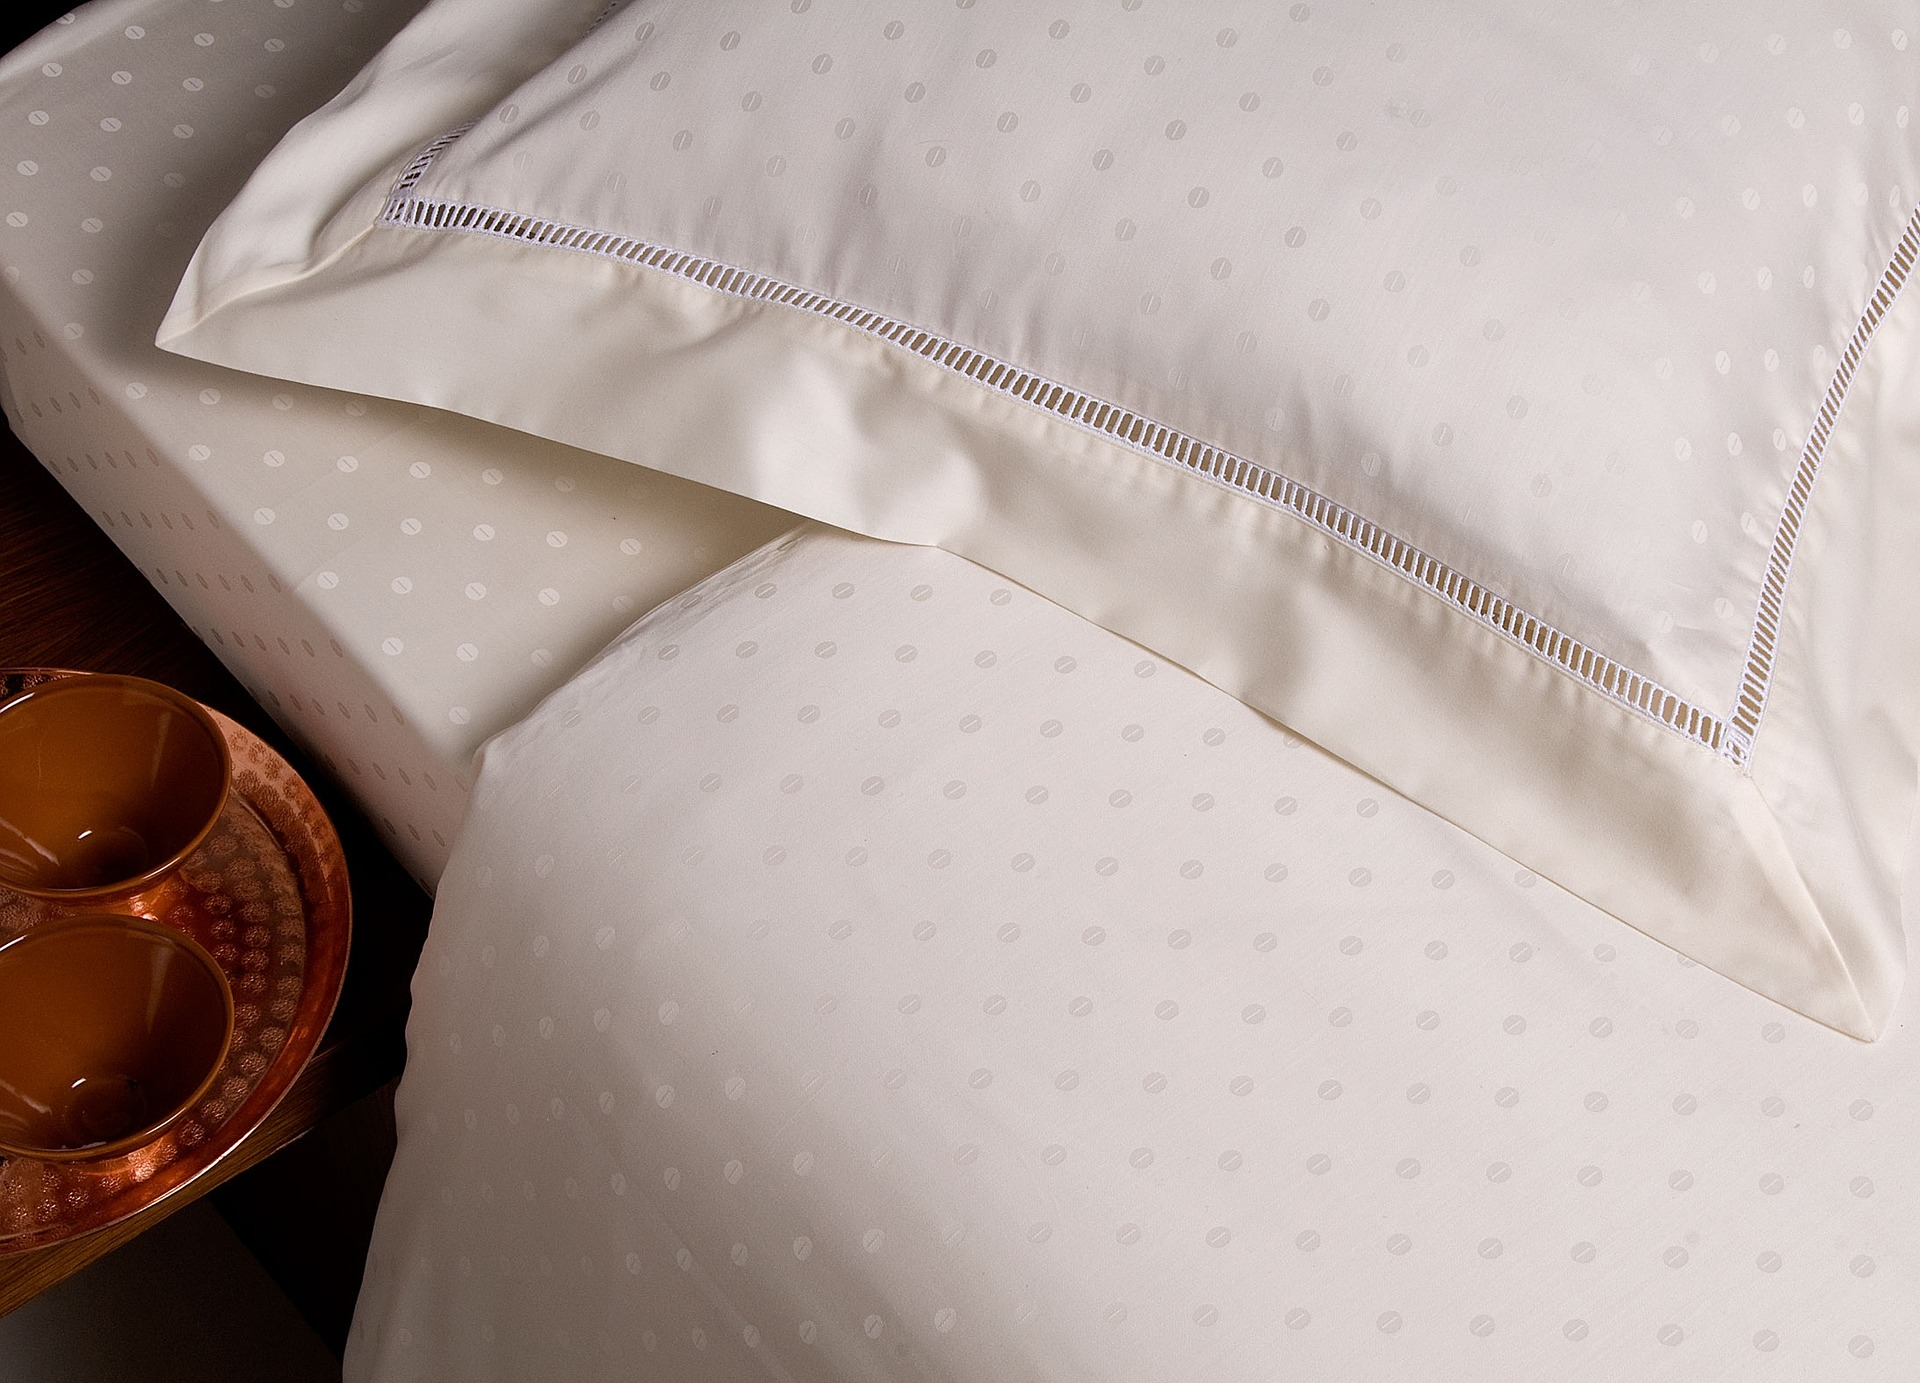 bed bugs in a mattress